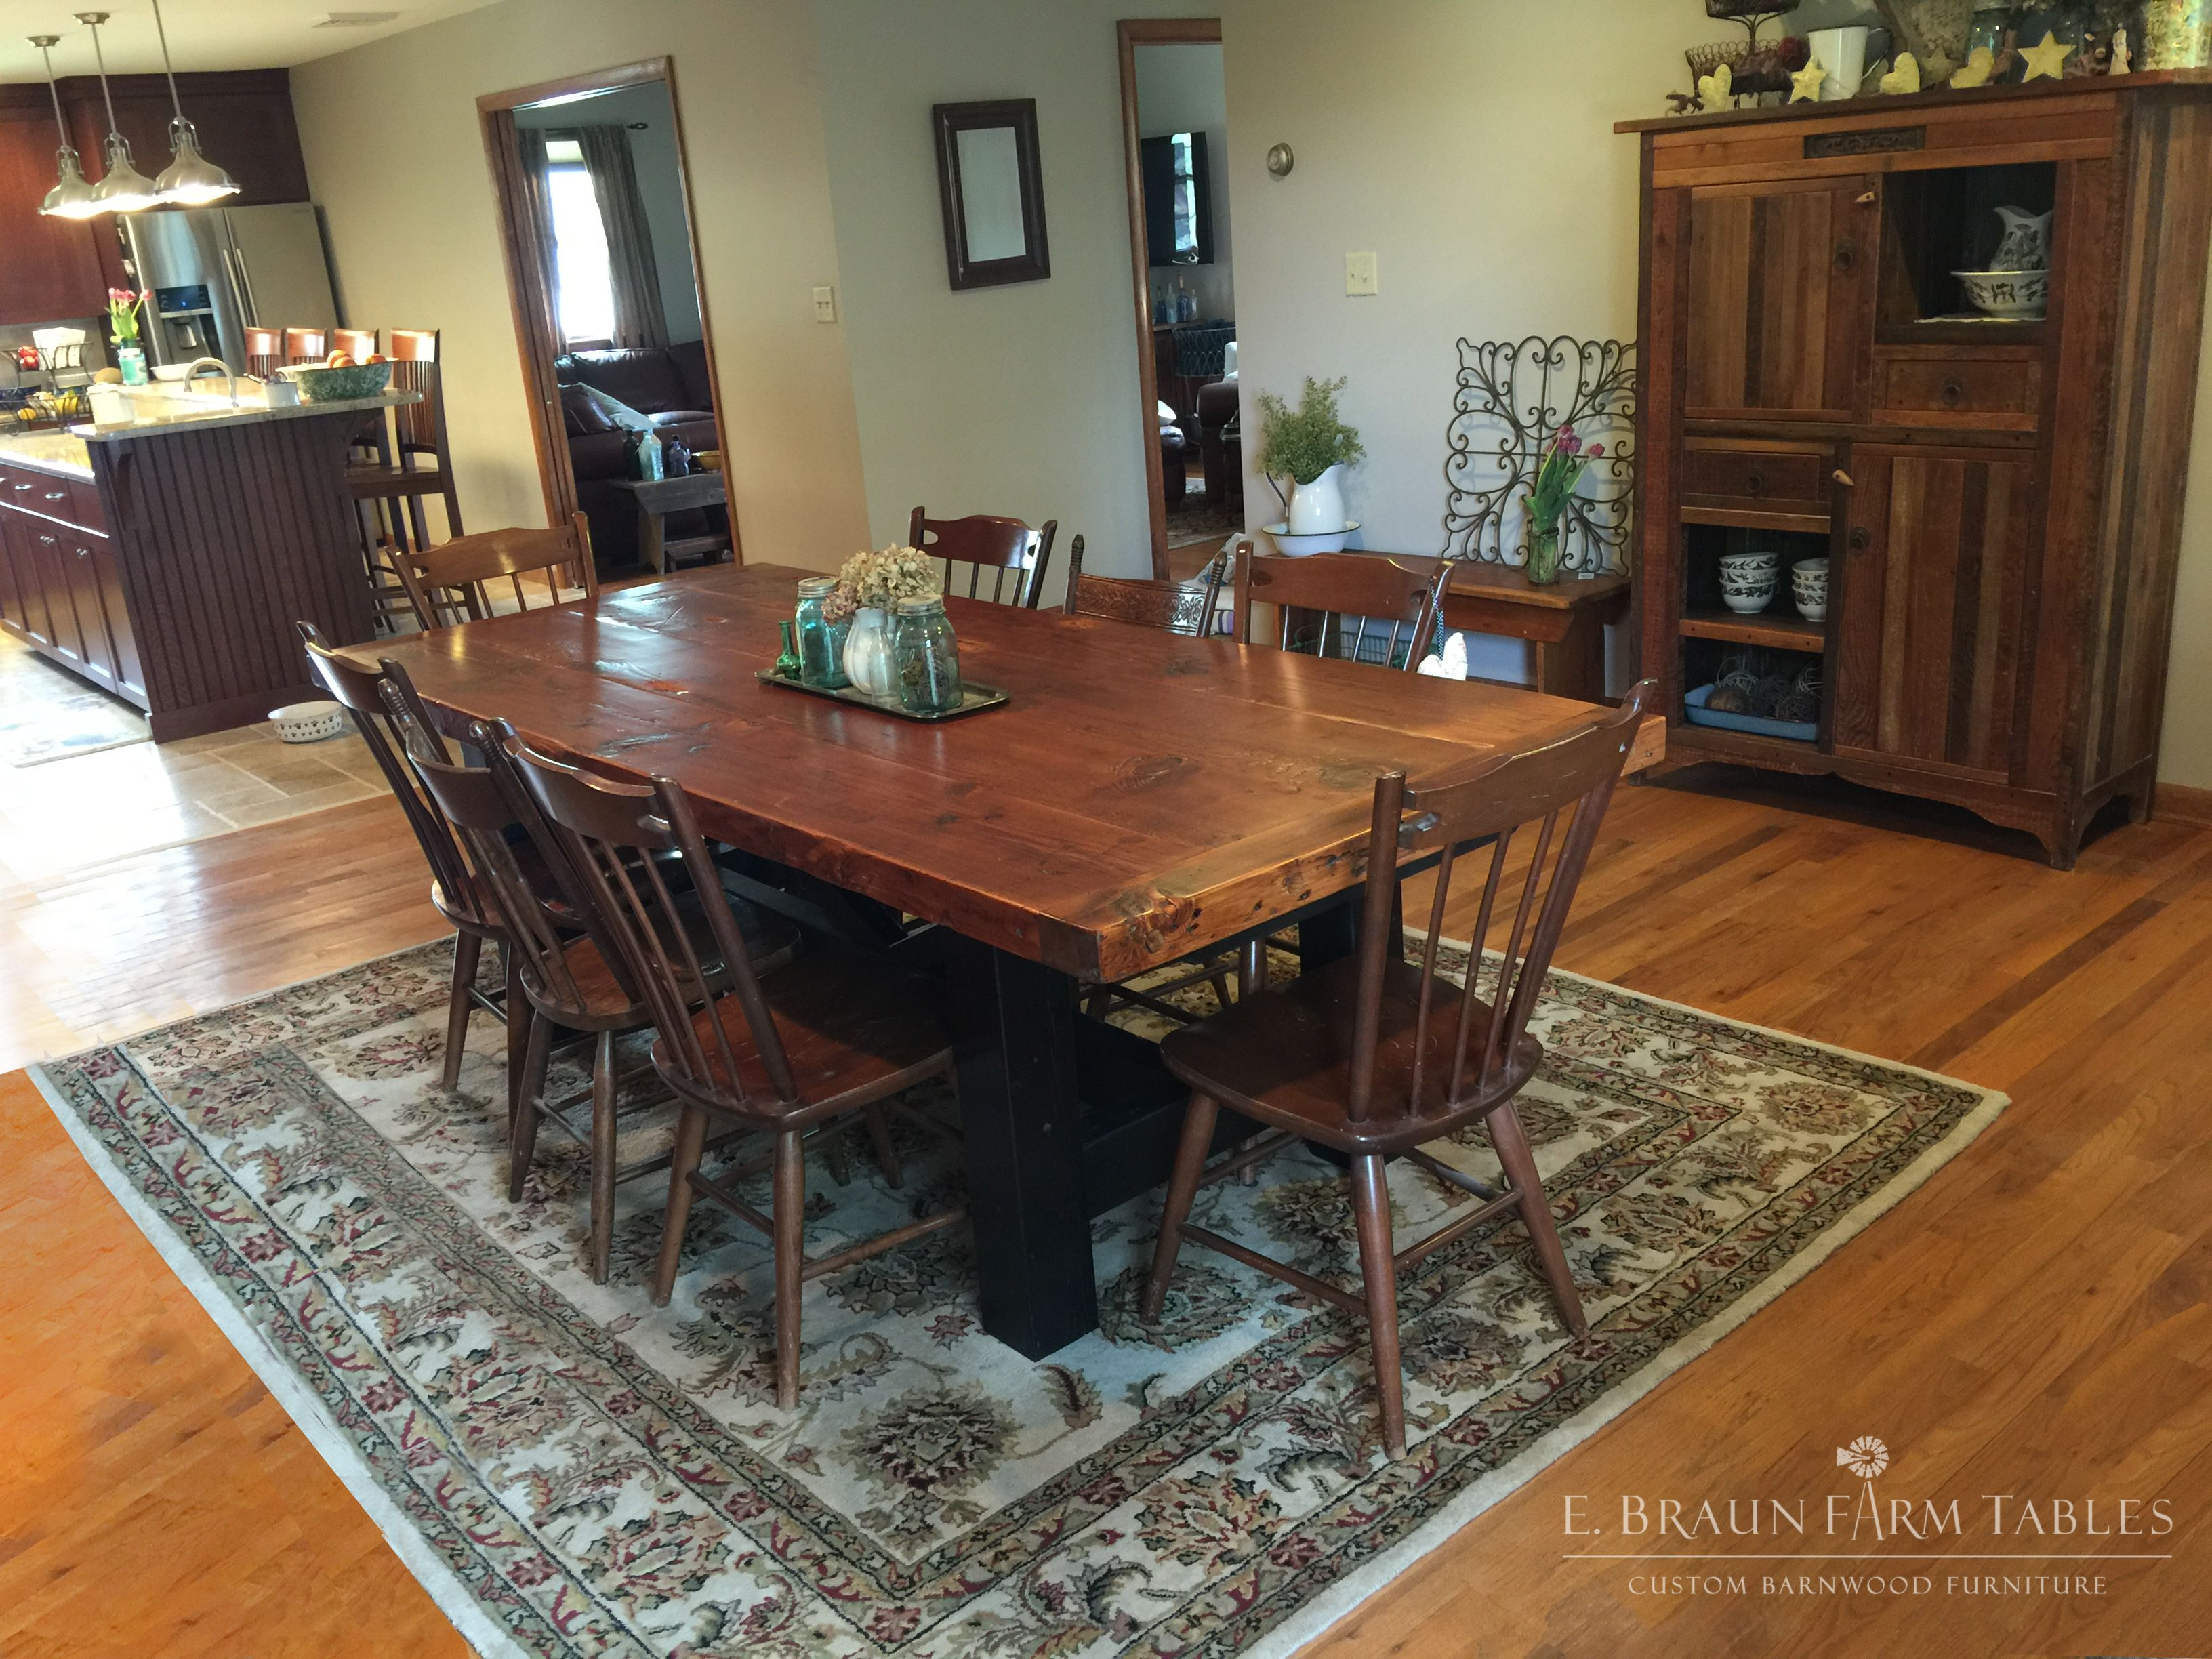 8 L 3 Thick Natural Colored Reclaimed Fir Table Top On An